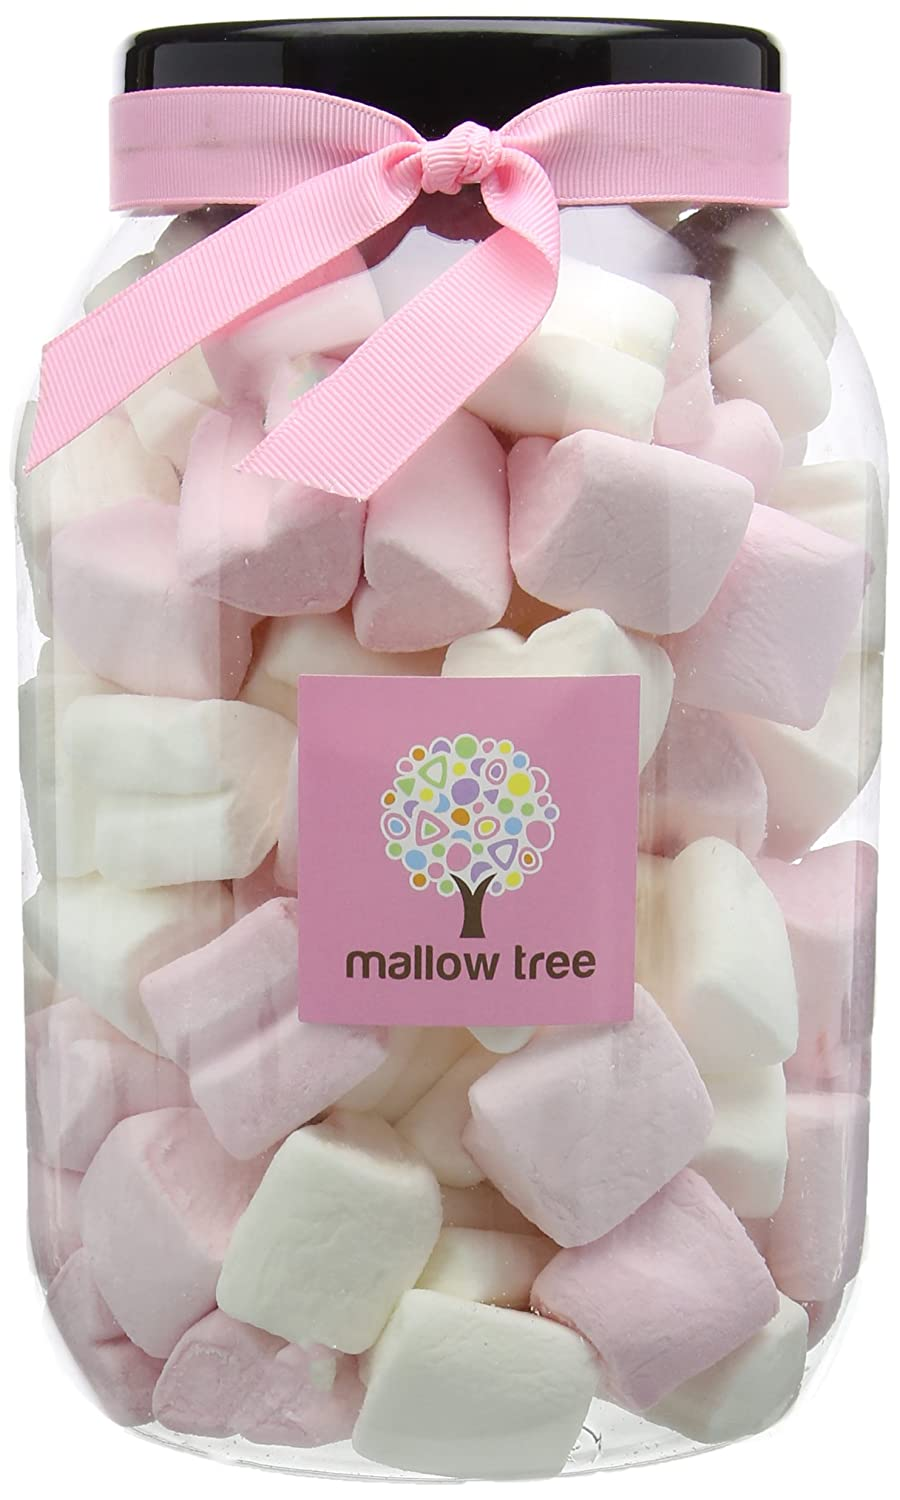 Mallow Tree Strawberry Flavoured Marshmallow Hearts in a Gift Jar ...